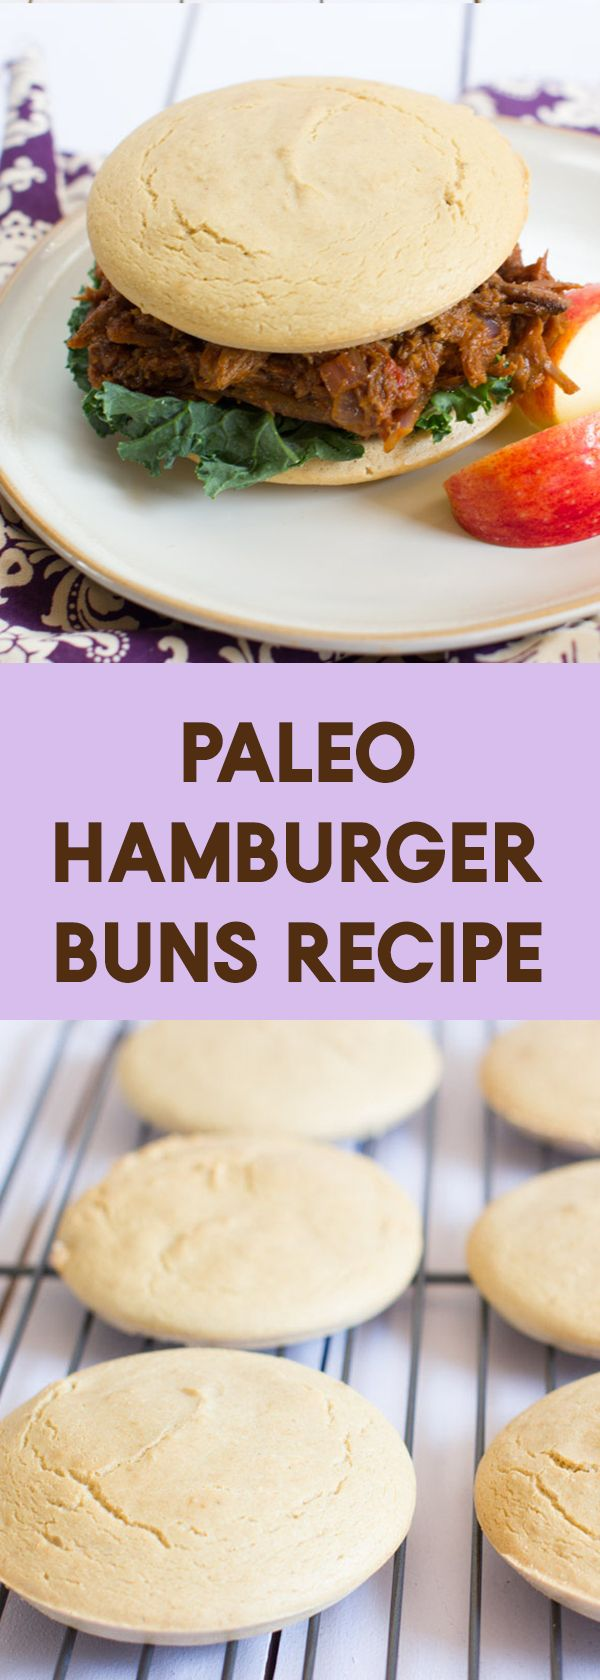 A Paleo Hamburger Buns recipe that will handle the biggest burger you can top it with. Sturdy, but soft and delicious. via @bejelly